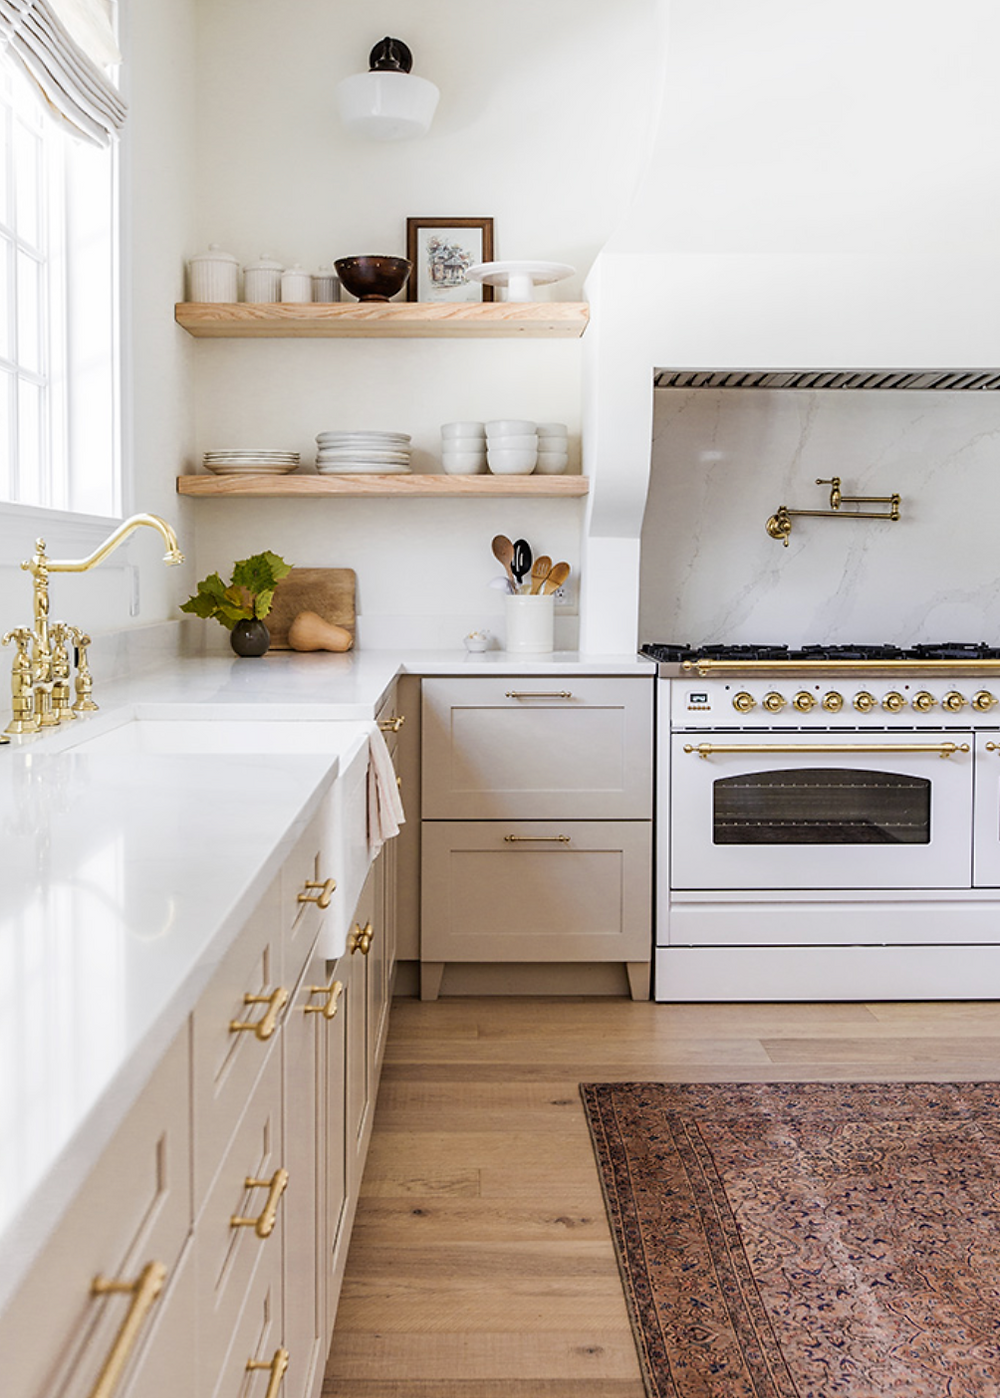 A bright high end kitchen with a gas range and gold faucets and some natural wood open shelves.